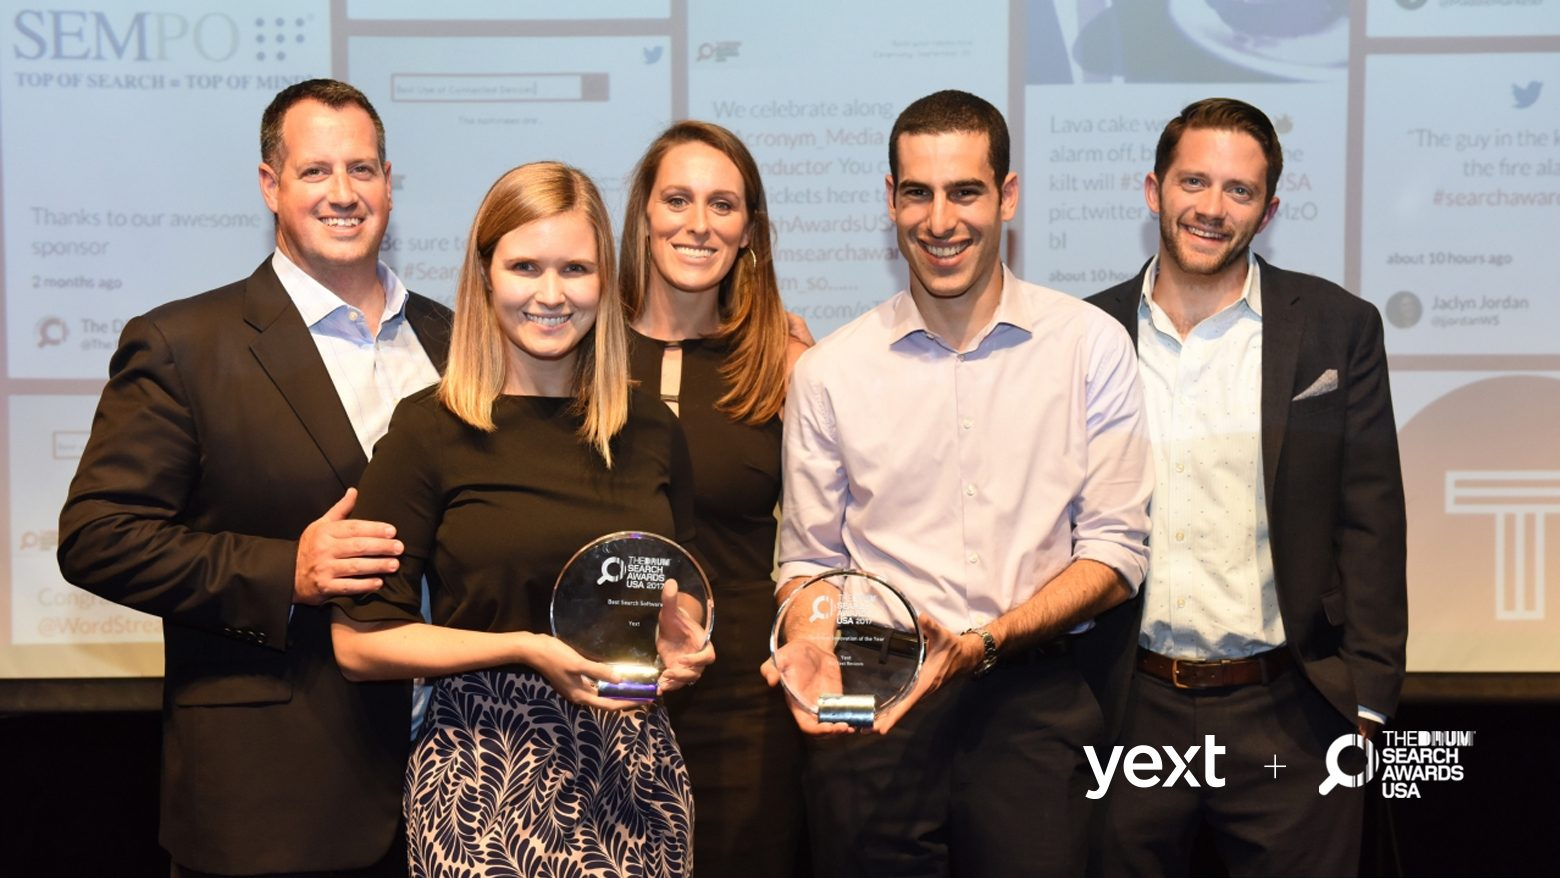 Drum Search Awards Yext